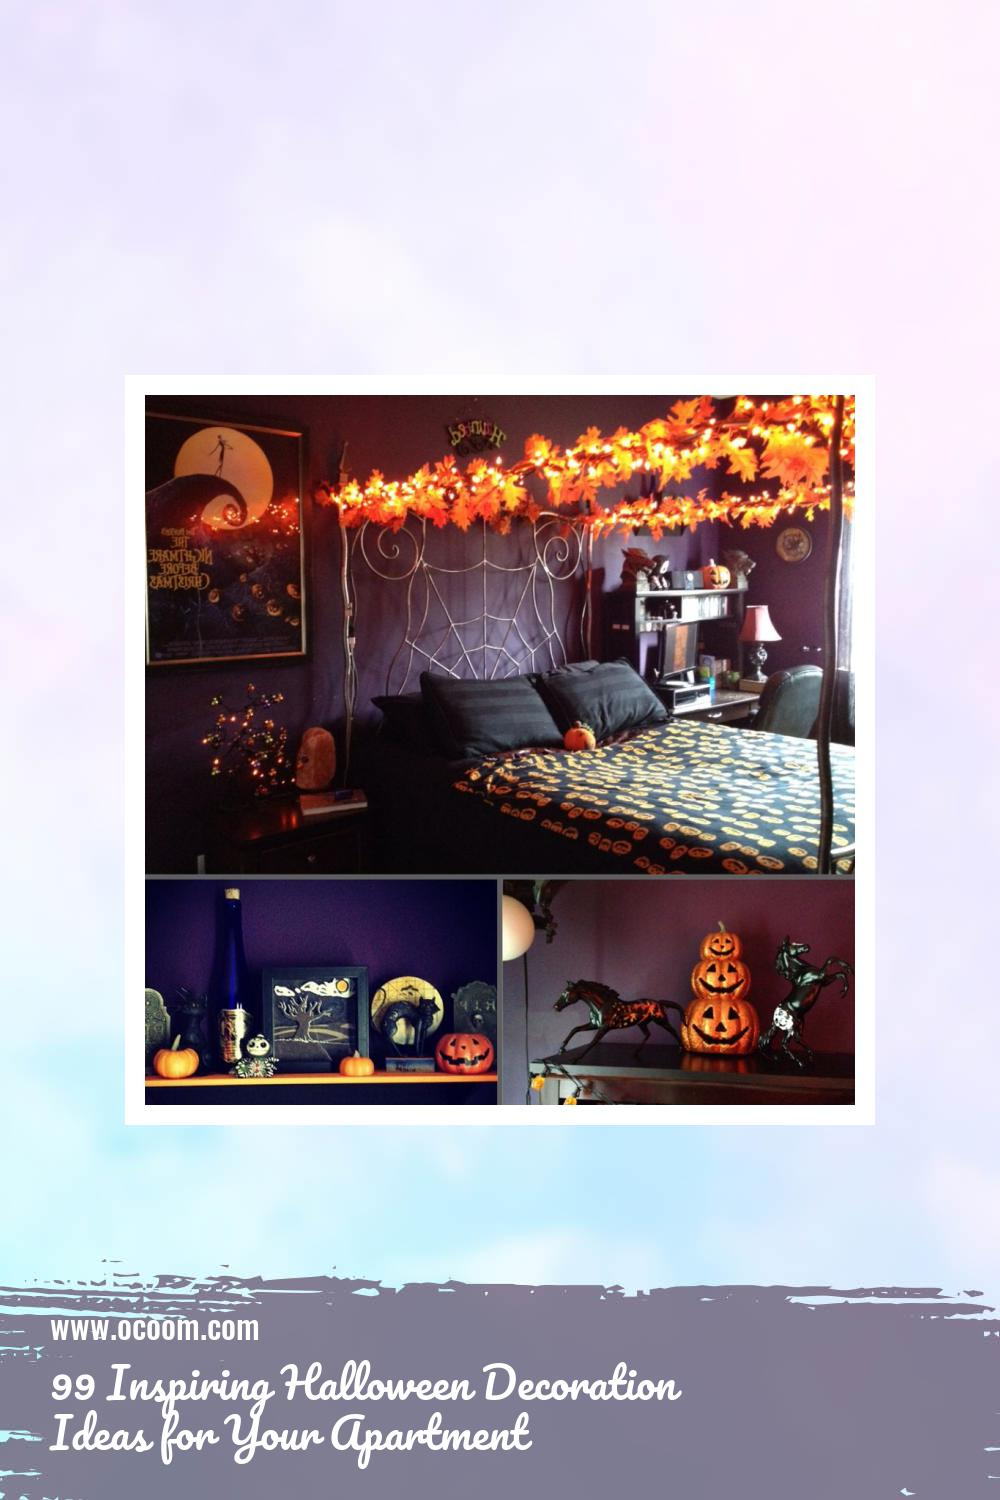 99 Inspiring Halloween Decoration Ideas for Your Apartment 54